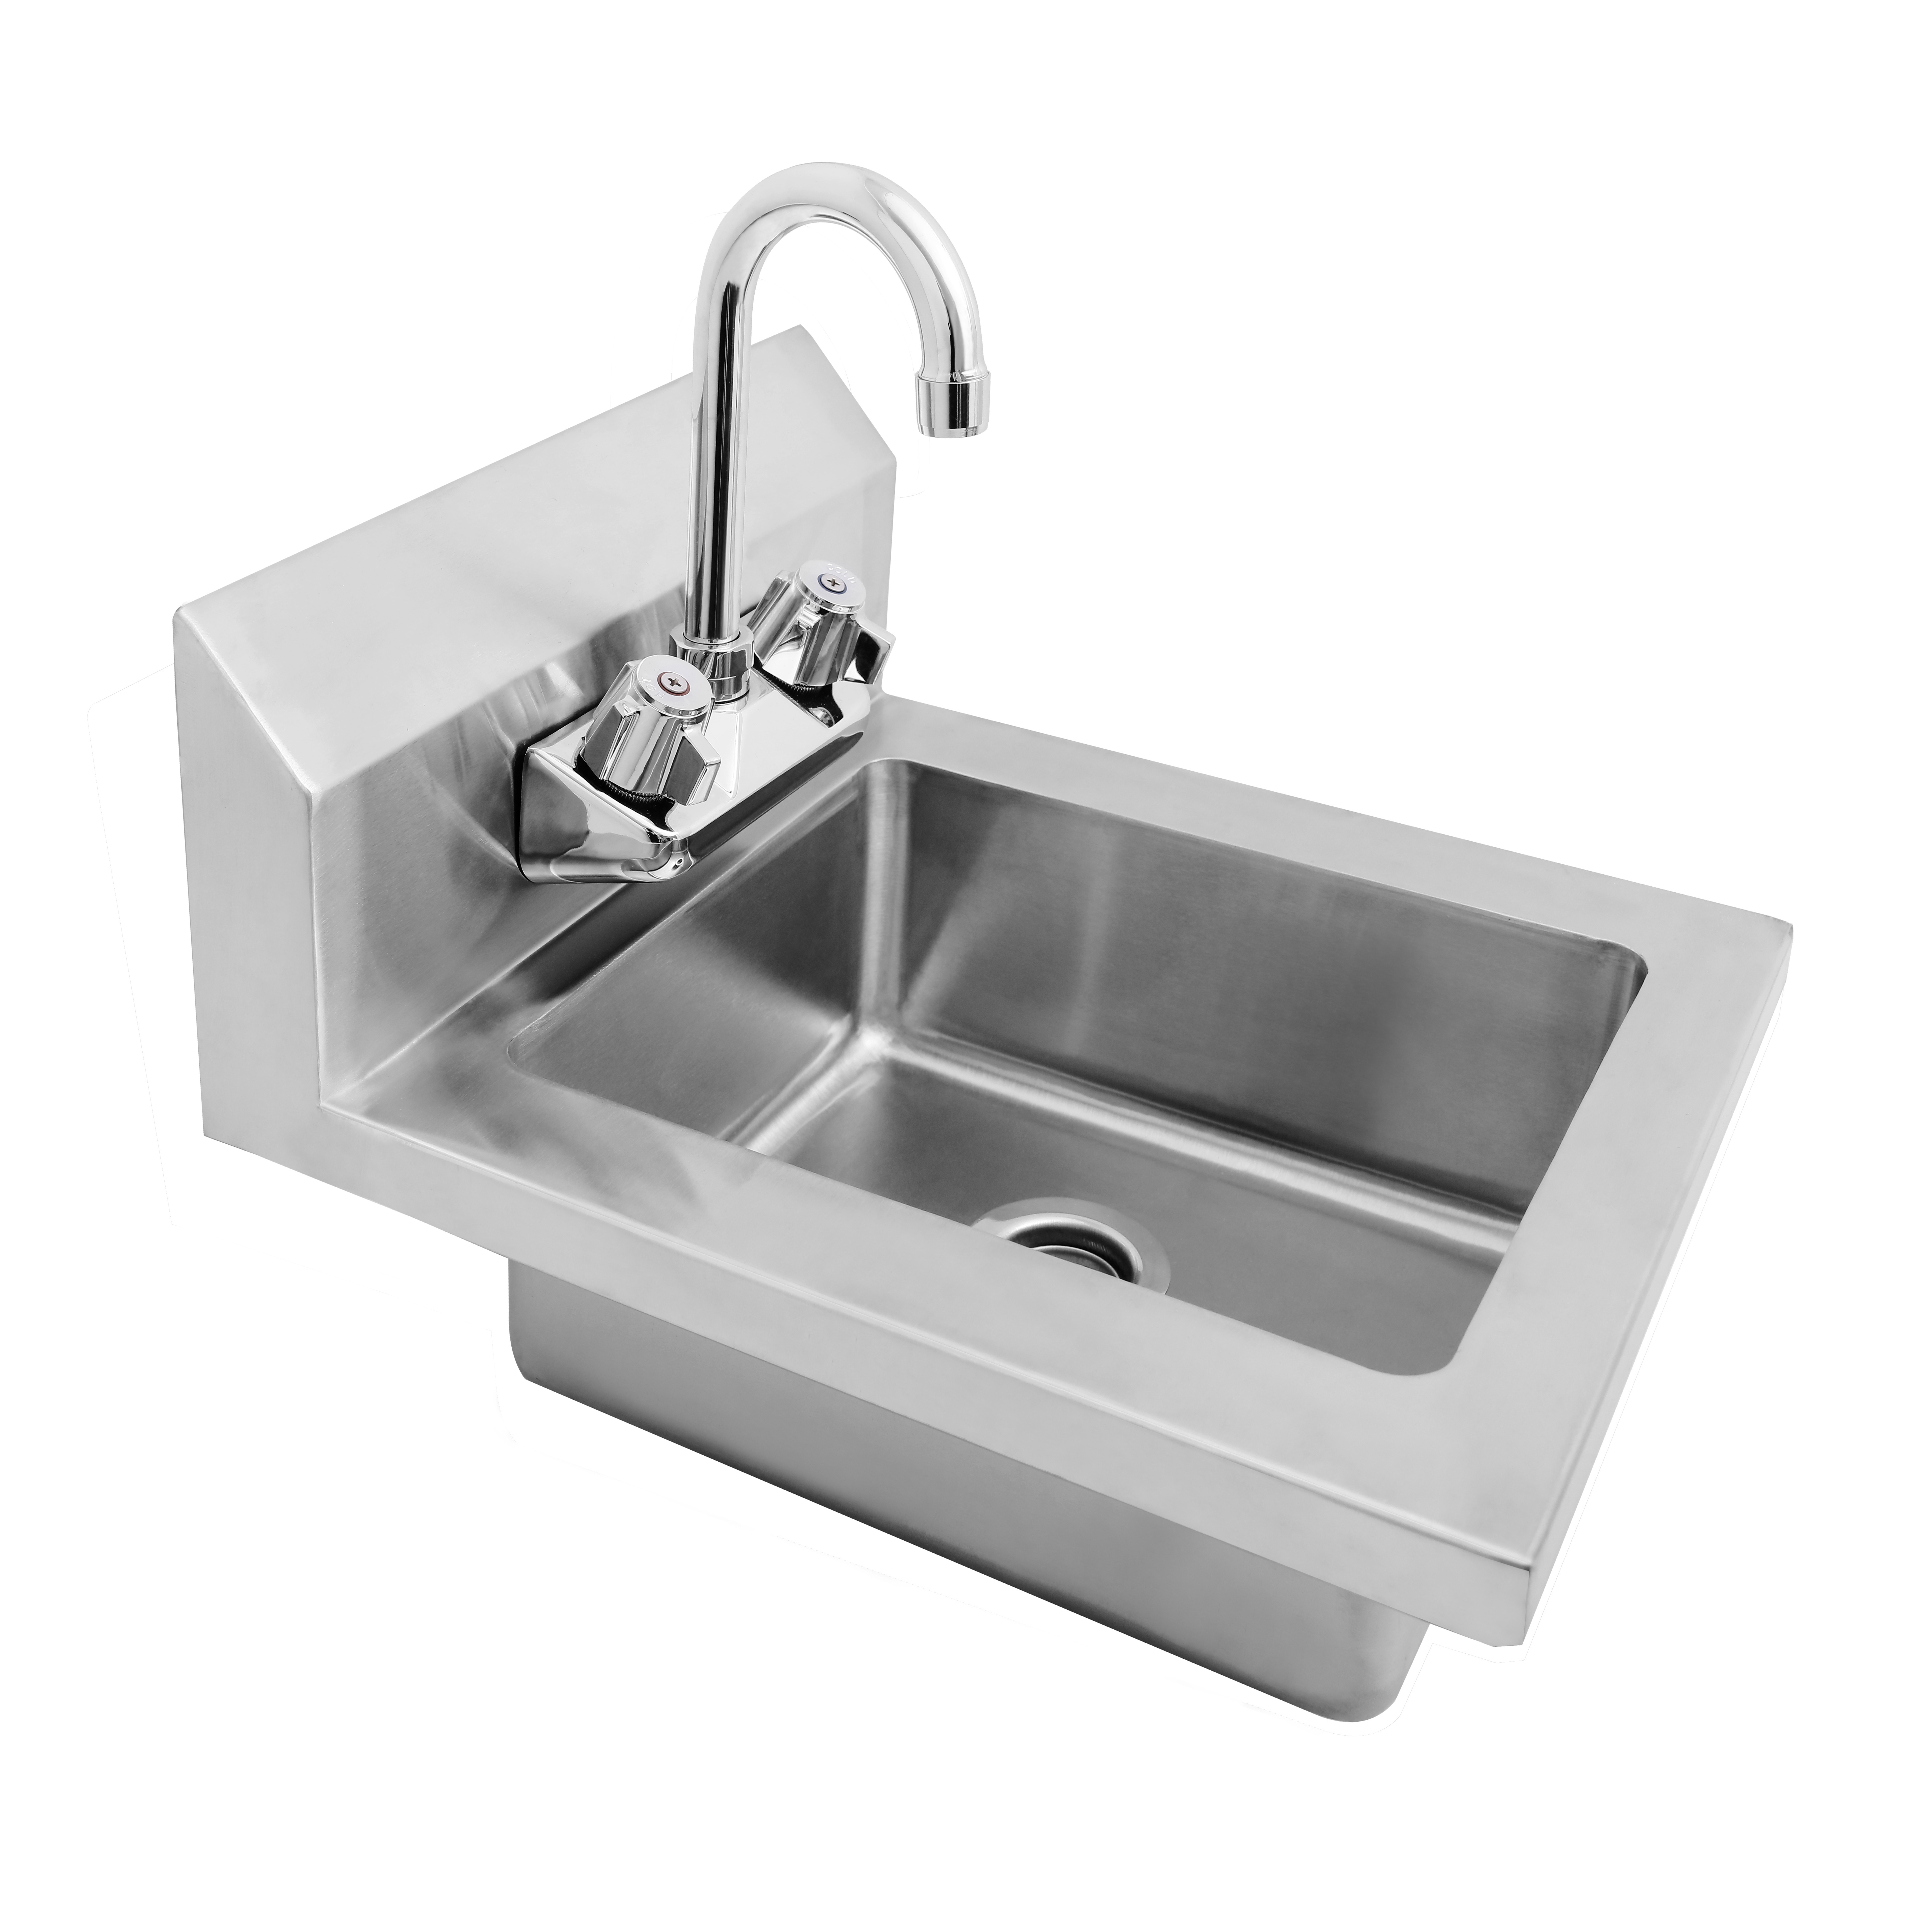 Atosa USA MRS-HS-14 sink, hand